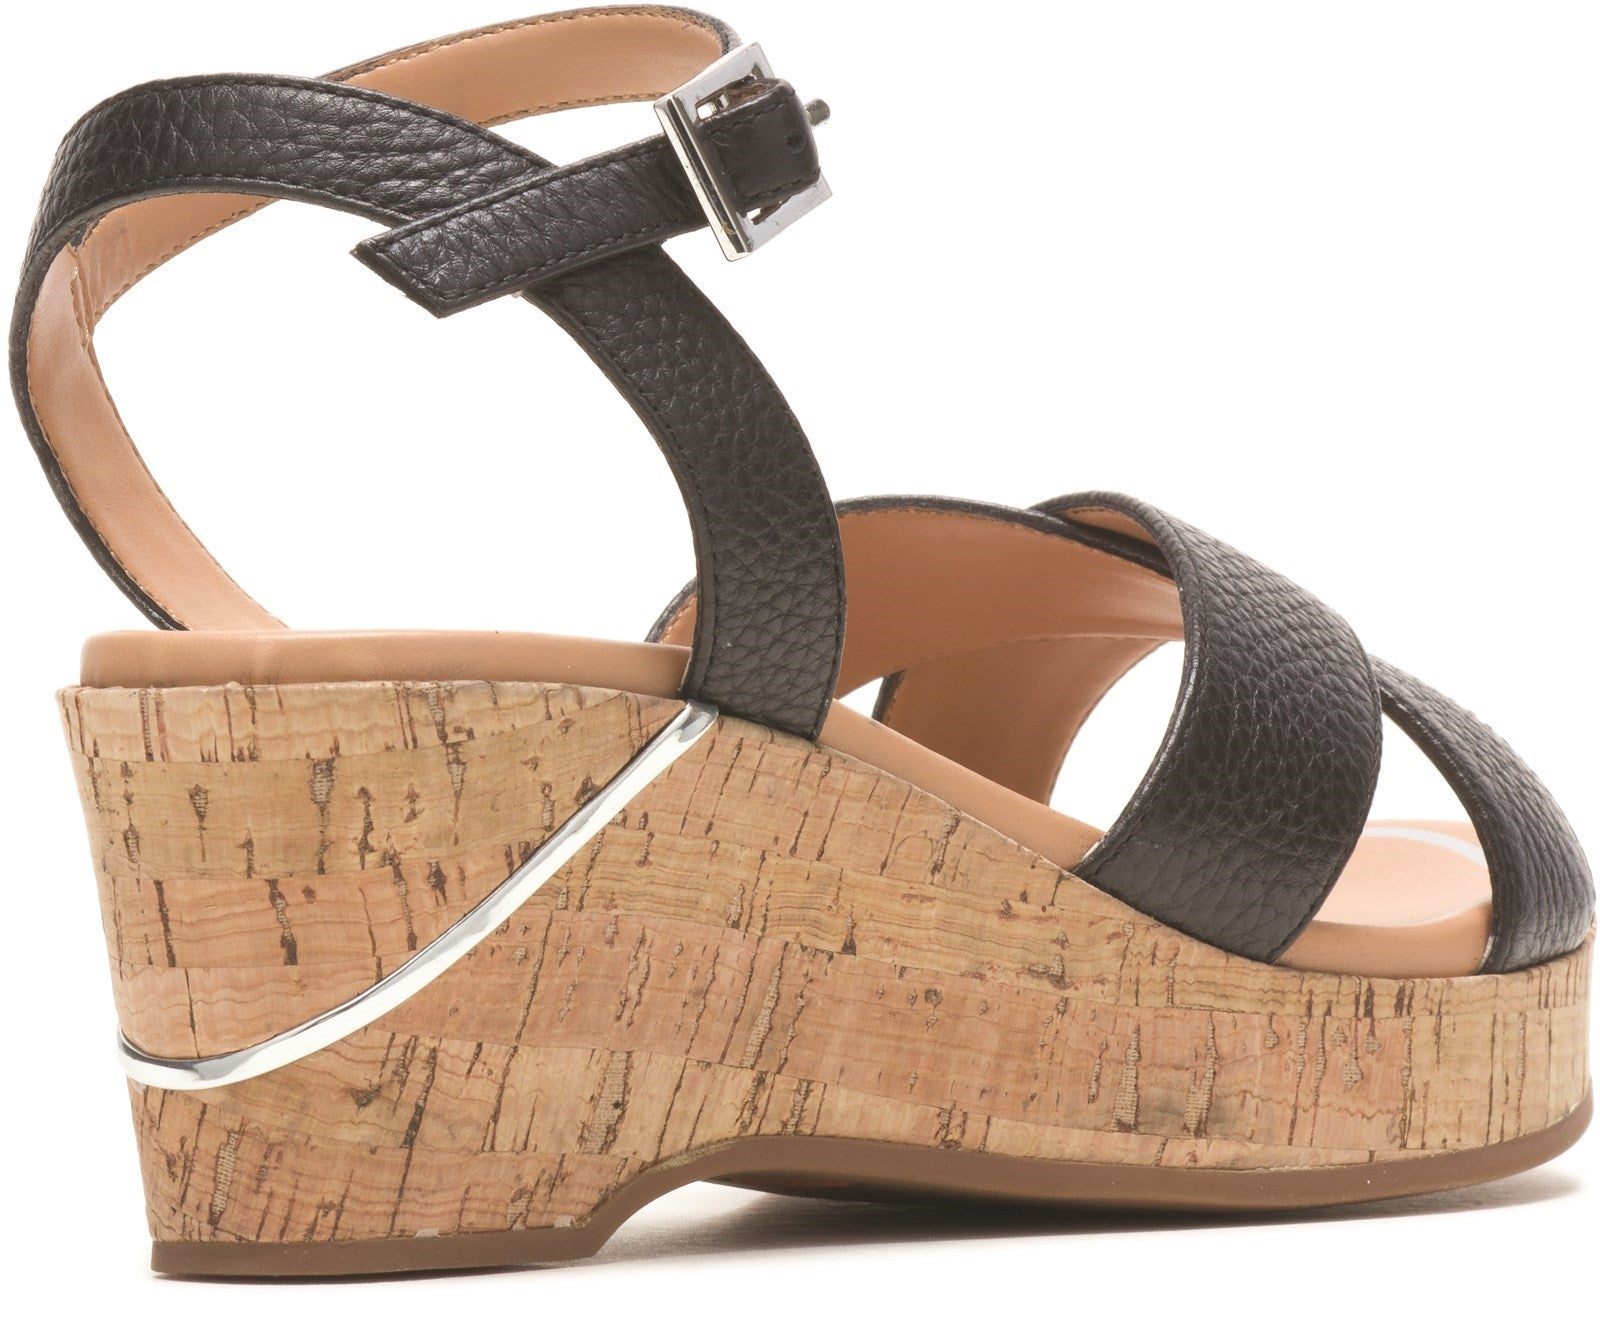 Black Maya Qtr Strap Wedge Sandal